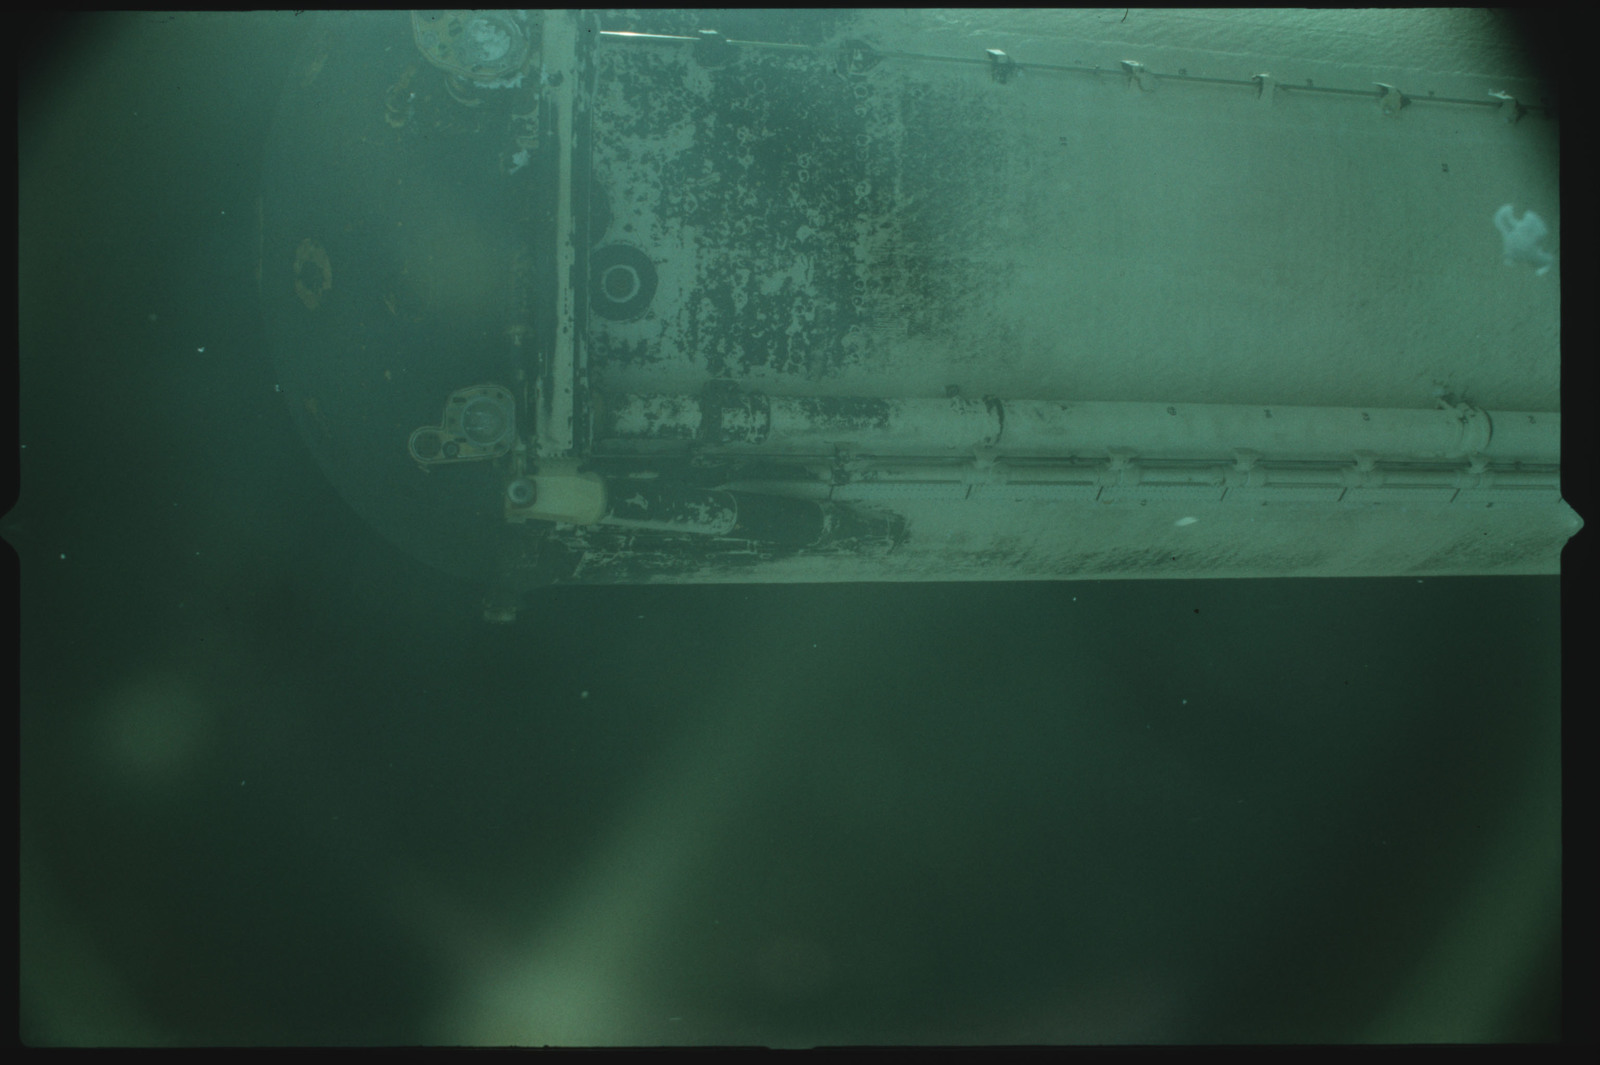 S02-500-932 - STS-002 - View of the External Tank after separation from Columbia during the STS-2 mission